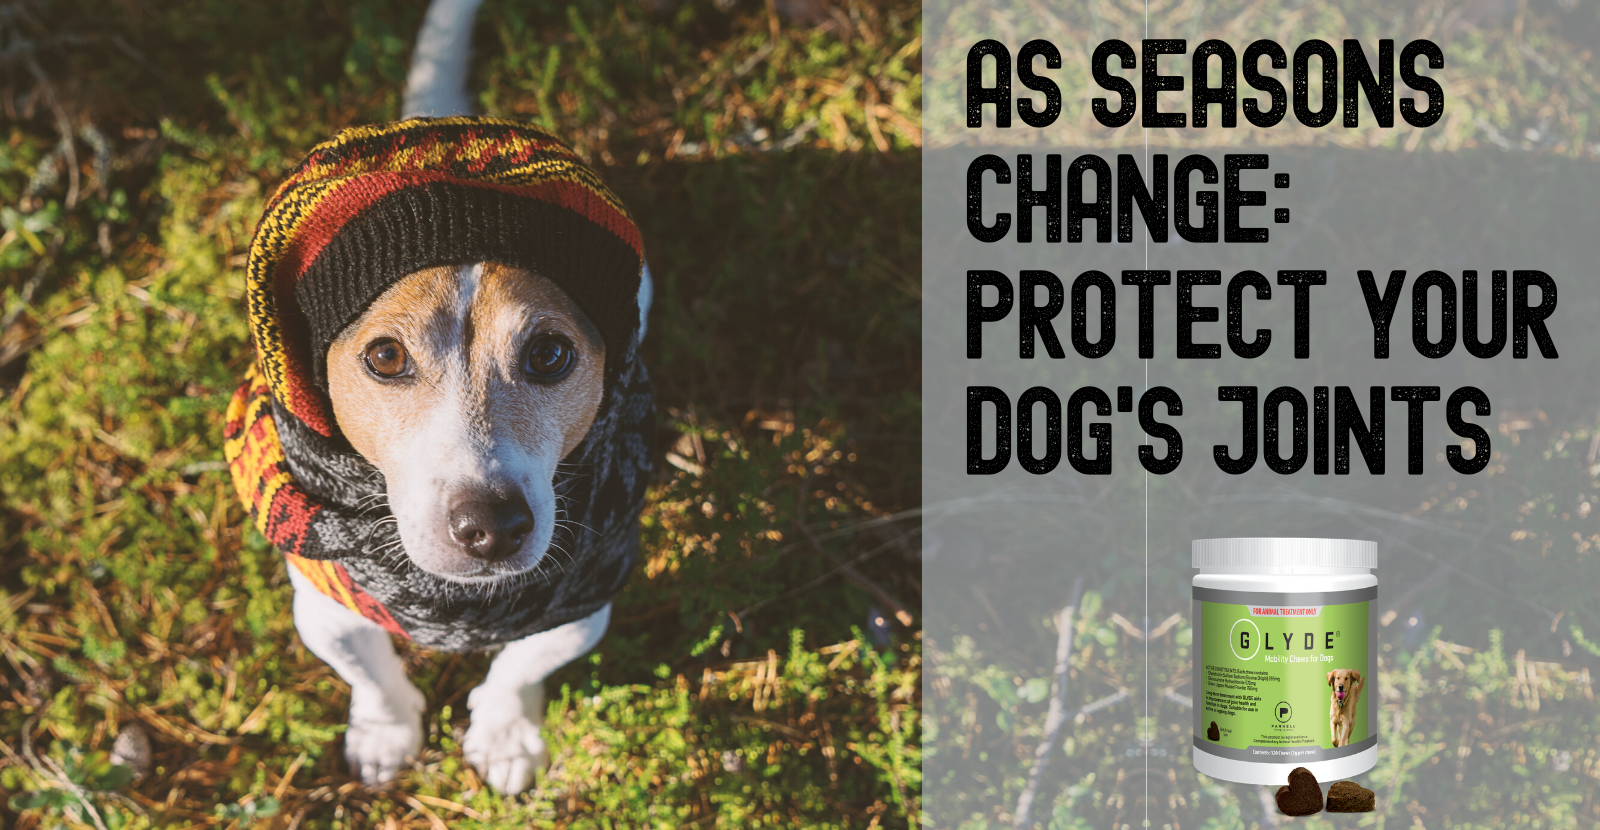 As seasons change, protect your dog's joints